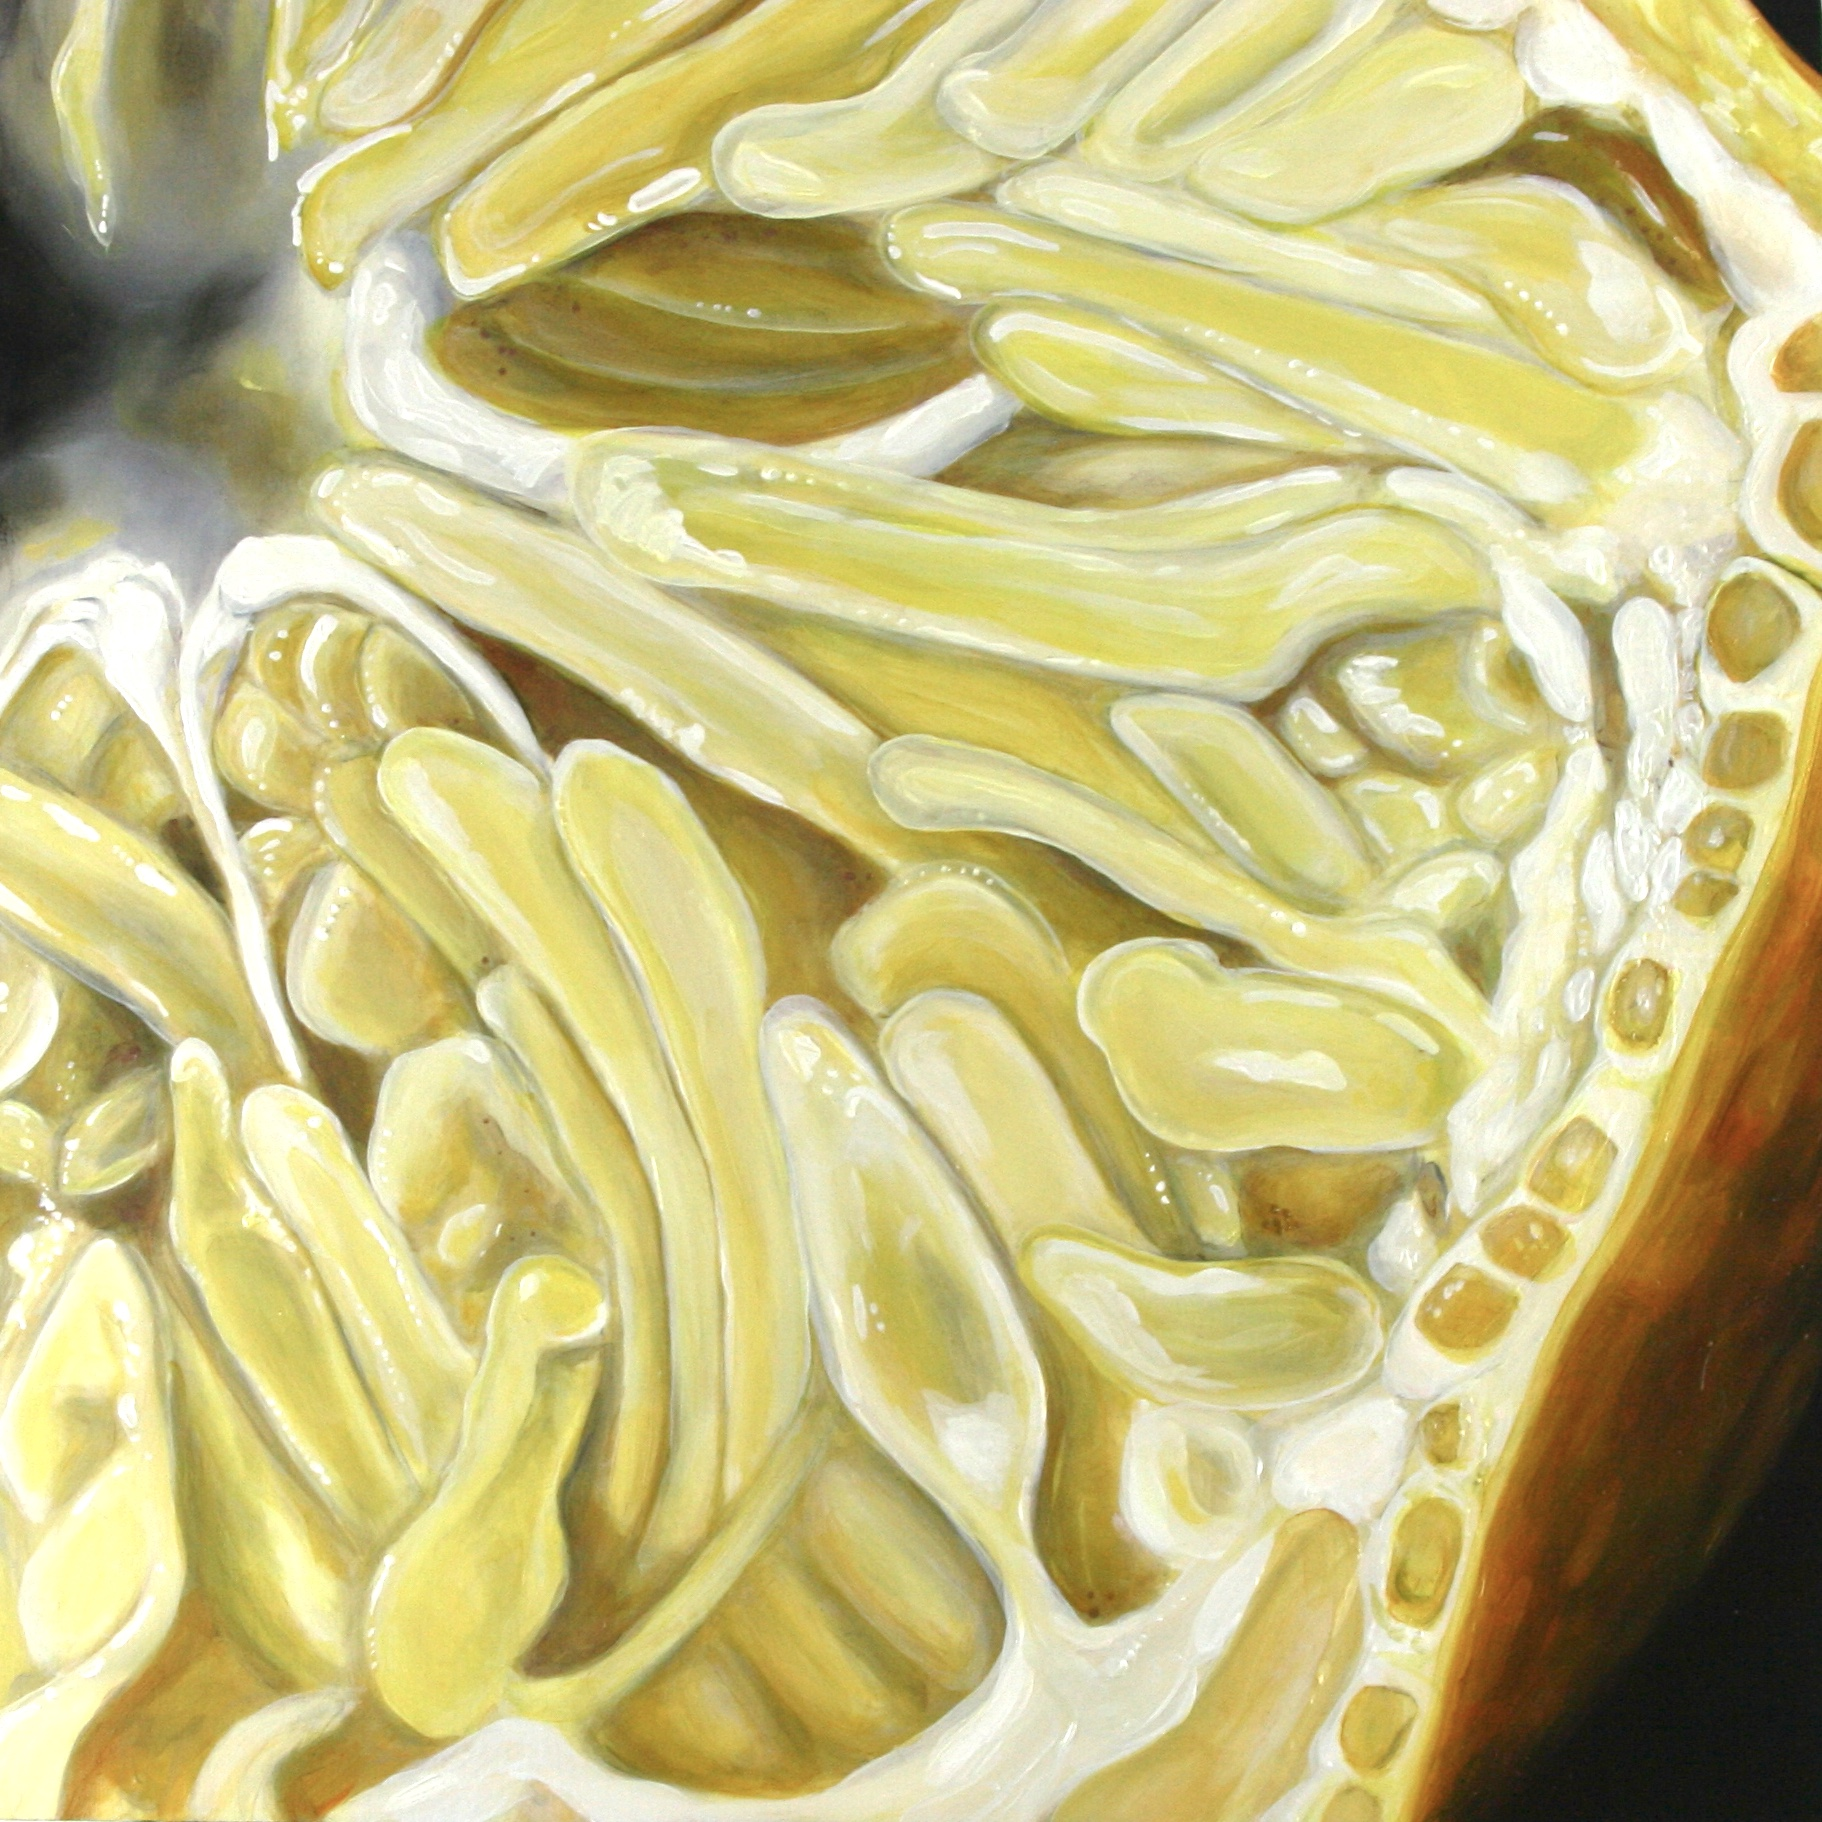 "Angela Faustina, Meyer Lemon I, 2015-2016. Oil on cradled painting panel, 16"" by 16"". Available for purchase through Gallery43, Roswell, GA."